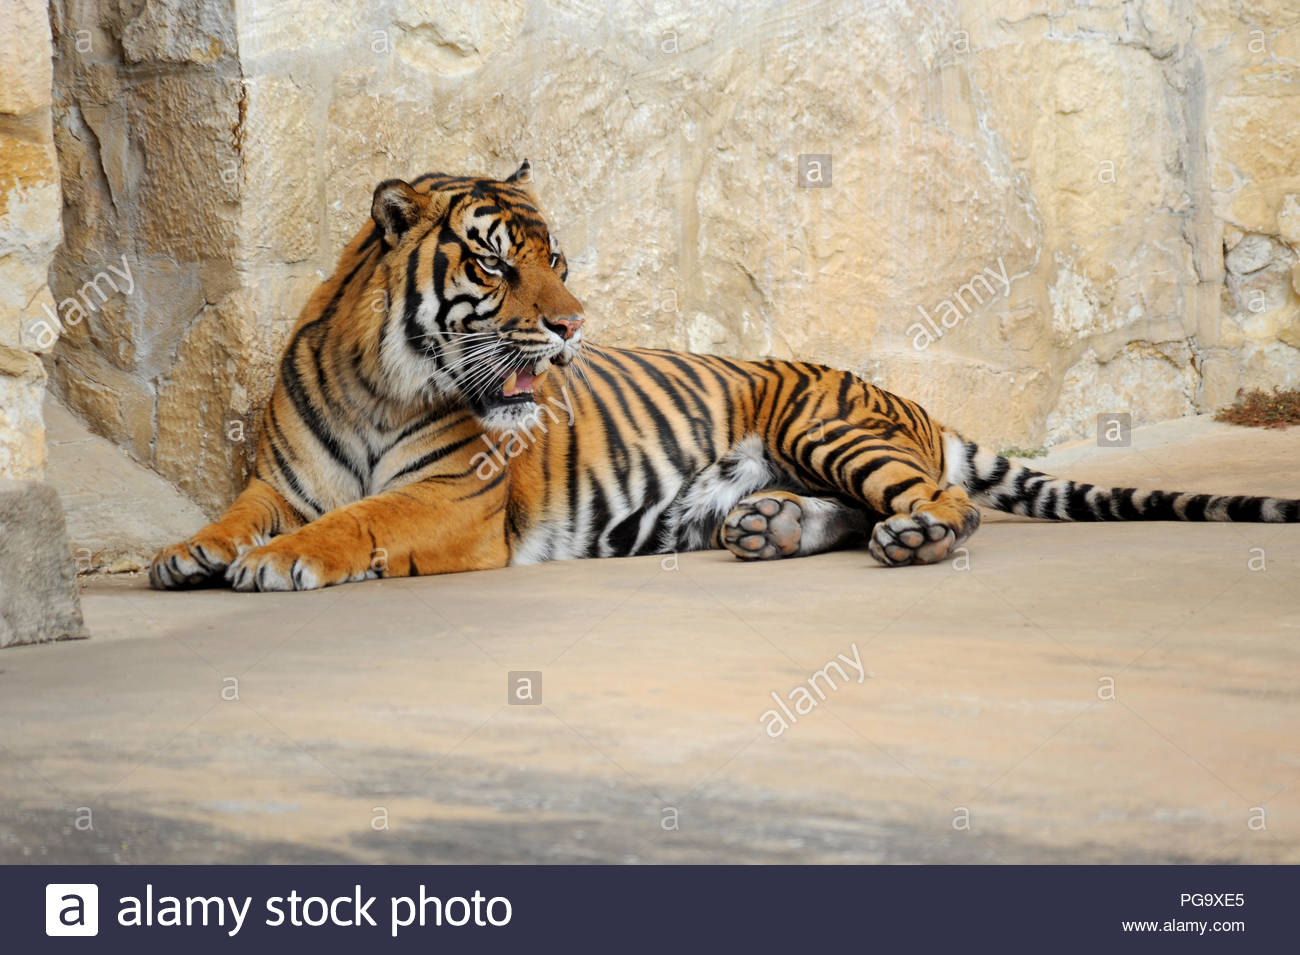 Wild tiger growls as he is lying on the ground. - Stock Image